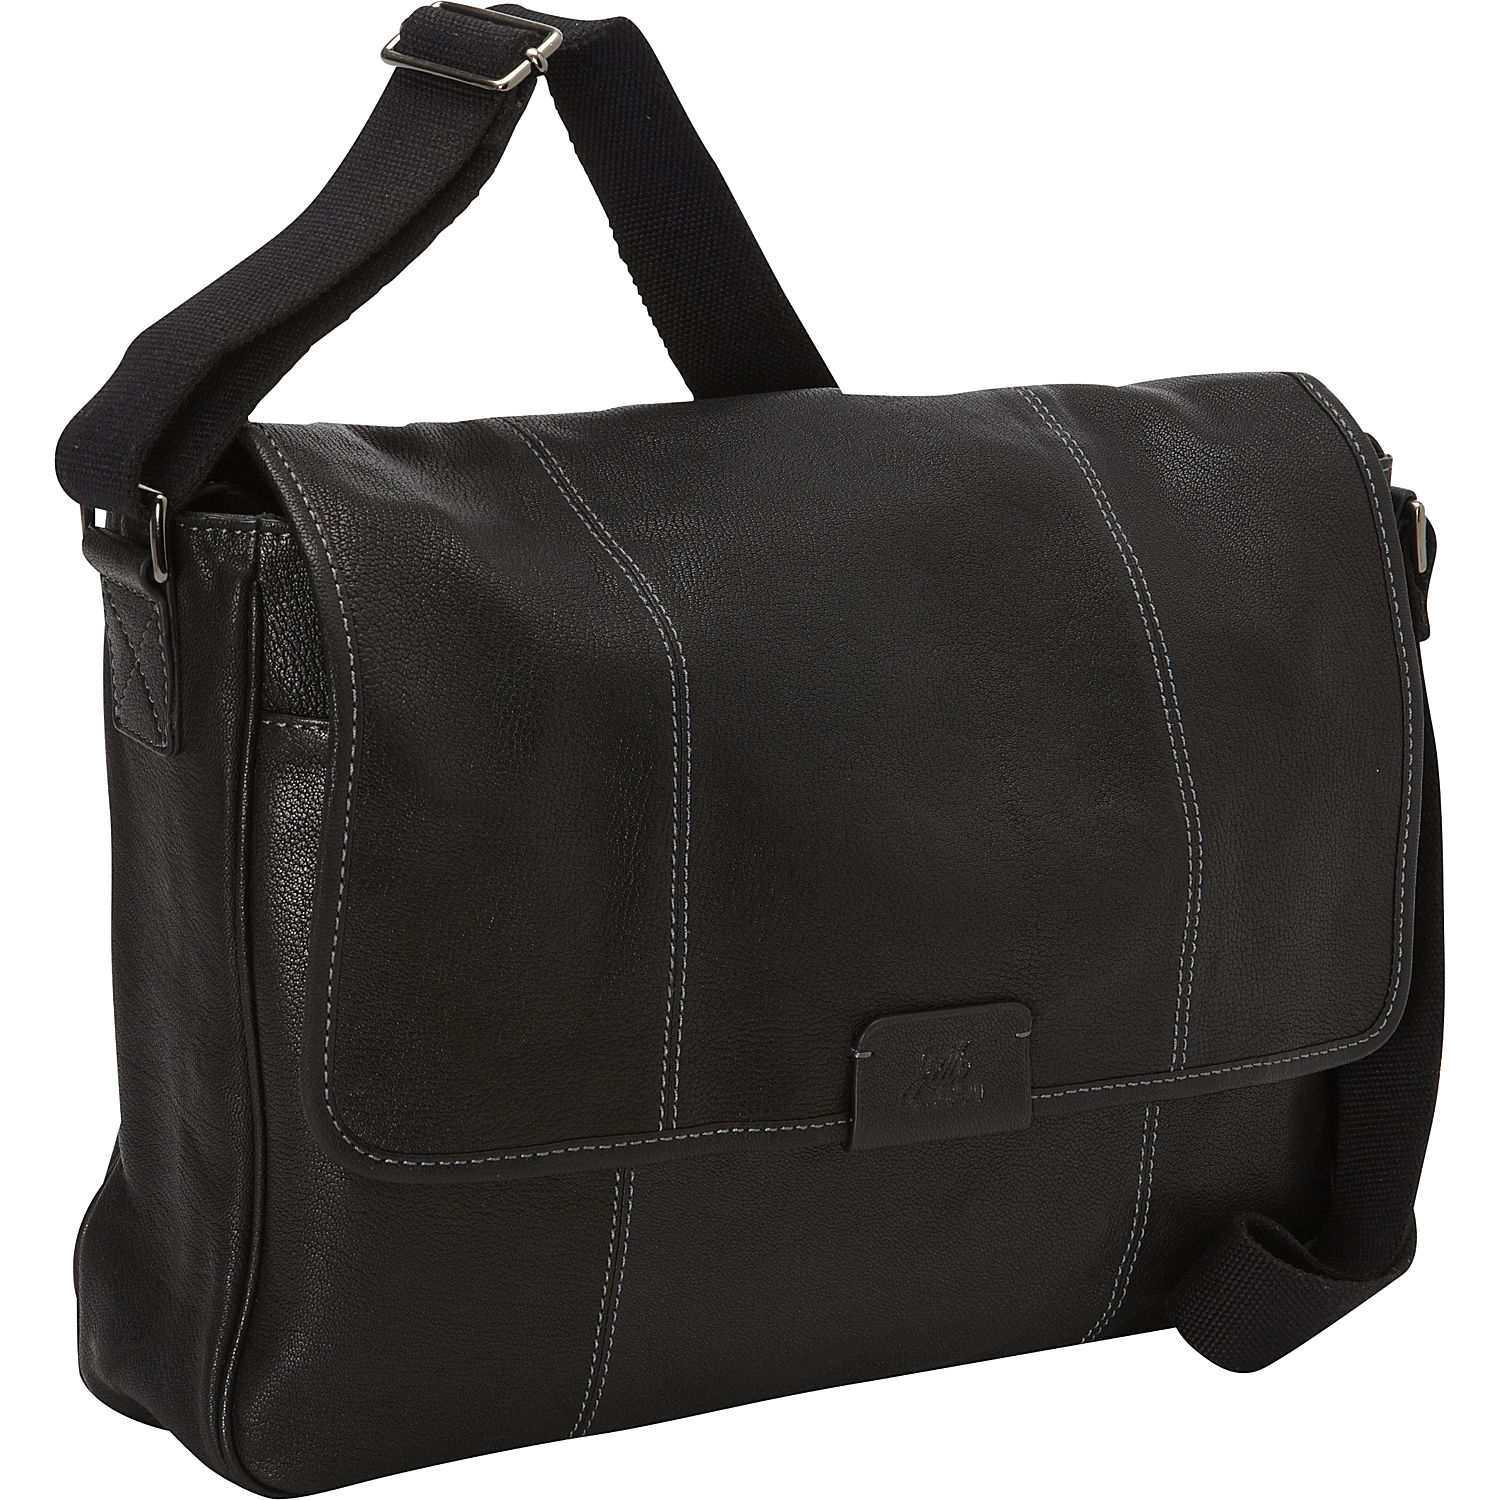 Shop for travel accessories and travel products at eBags - experts in bags and accessories since Free Shipping and Free Returns. Plus expert advice and millions of customer reviews.